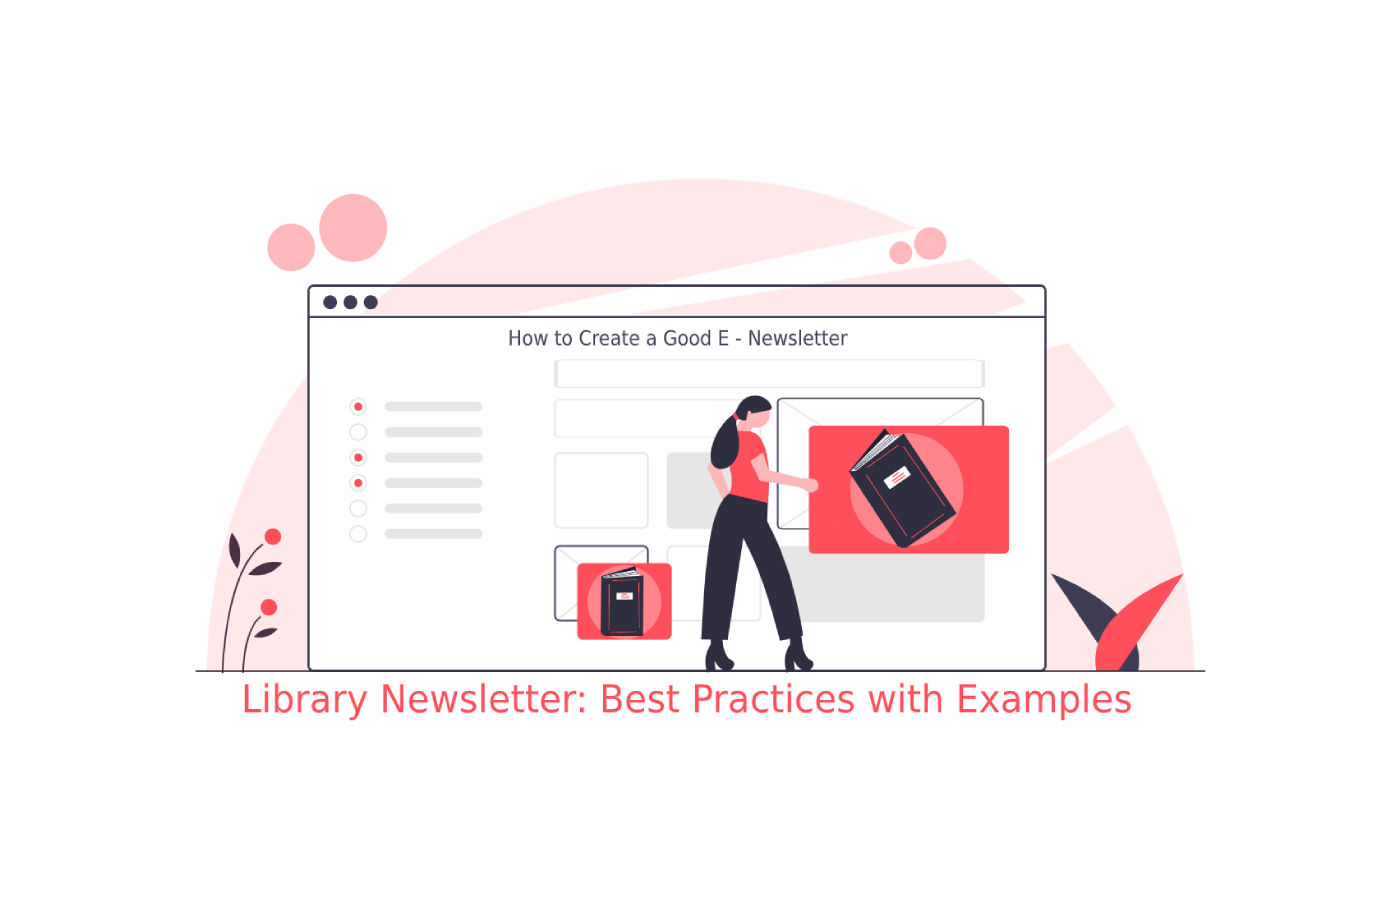 library_newsletter_best_practices_with_examples